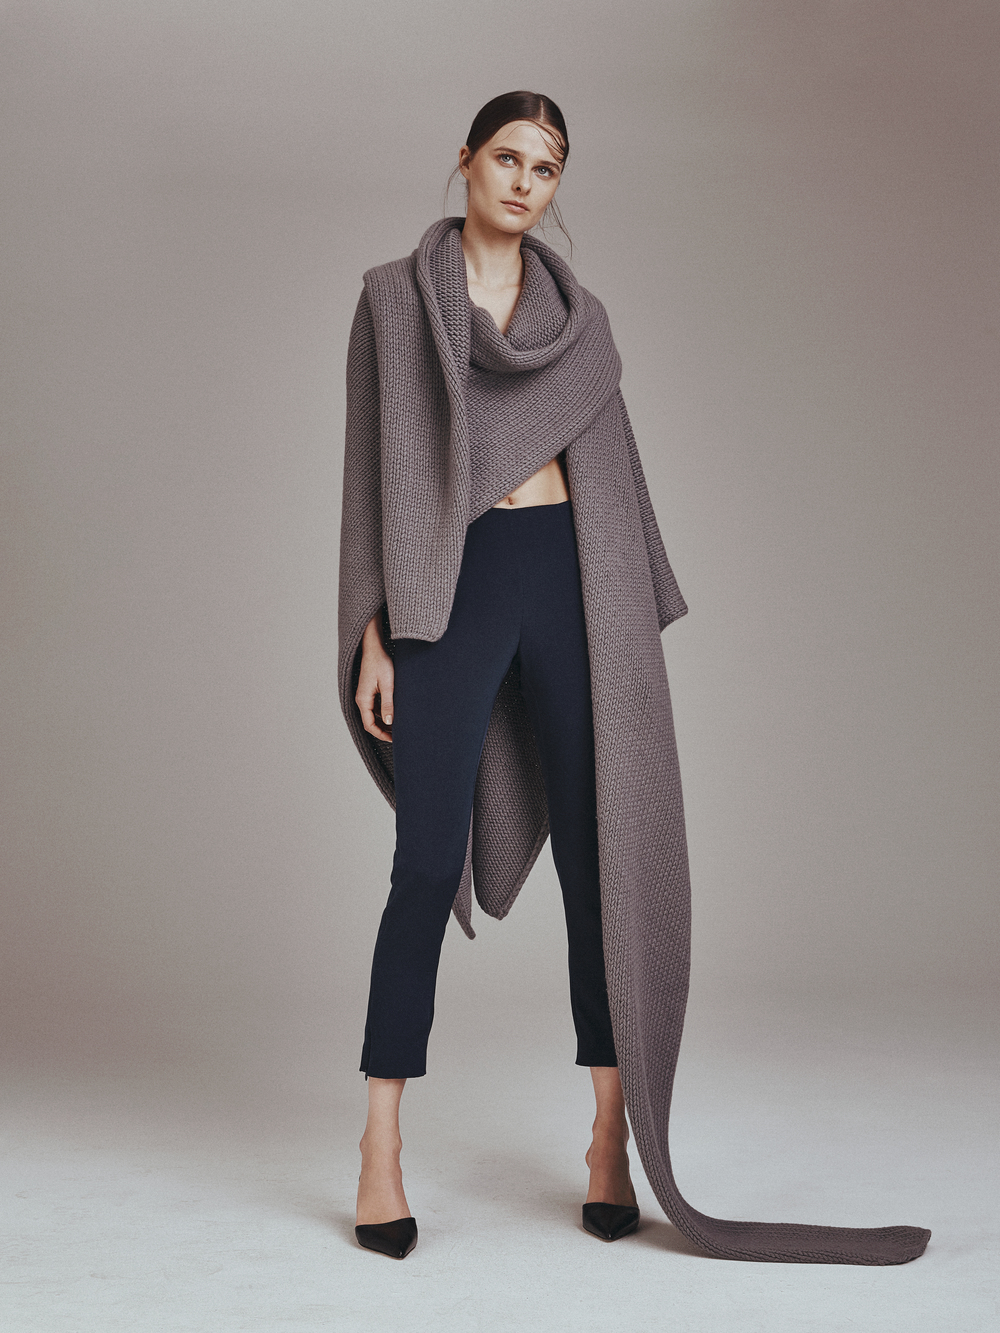 ANGELO SCARF  Superliuma Knit 100% Cashmere  Partially Hand-Knitted in Italy  -   PIPPA PANTS  4 Ply Silk      Contact for inquiry